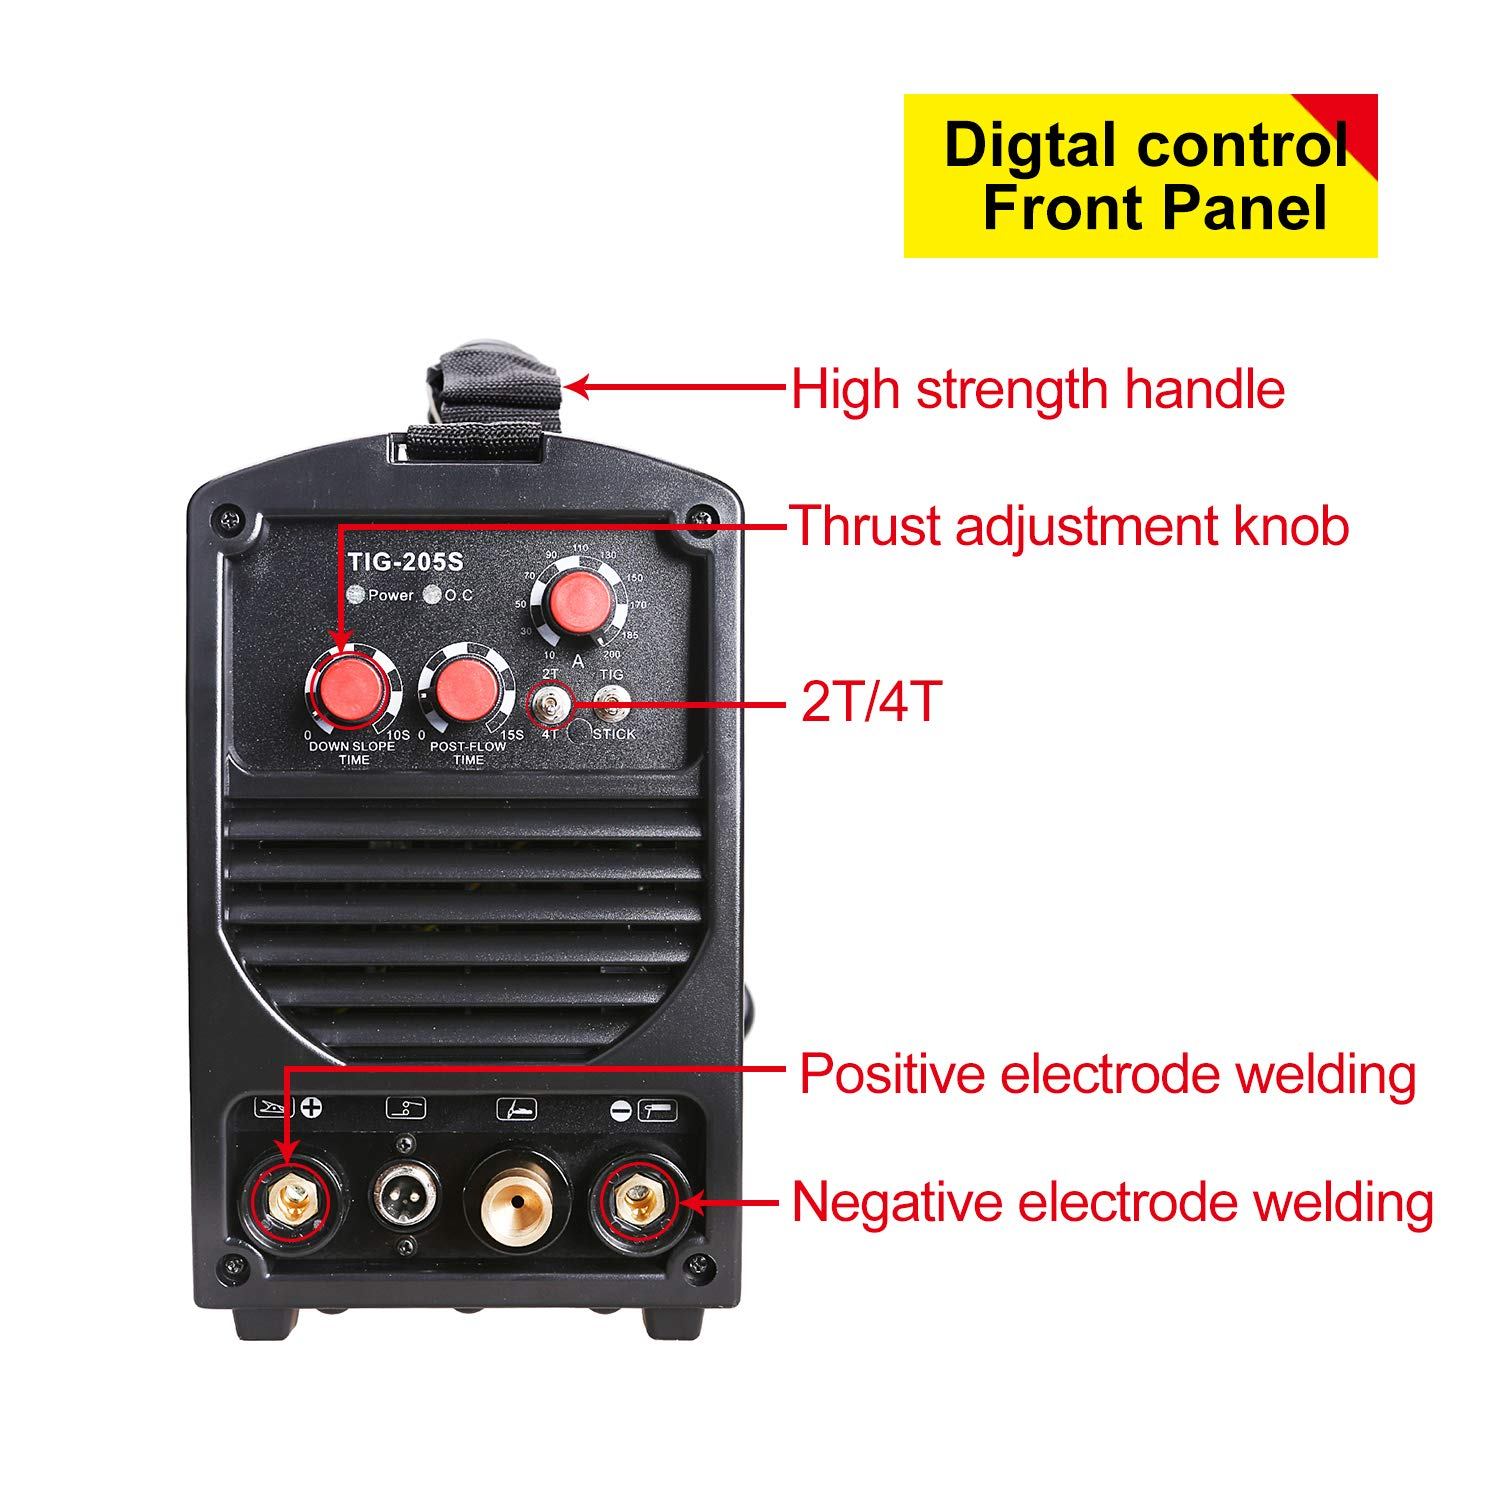 Ansen Welder IGBT Inverter Electric Welder 115V/230V Dual Voltage Tig&Stick DC Lift TIG Portable Welding Machine(160AMP/200AMP) (TIG-205S-200A) - - Amazon. ...